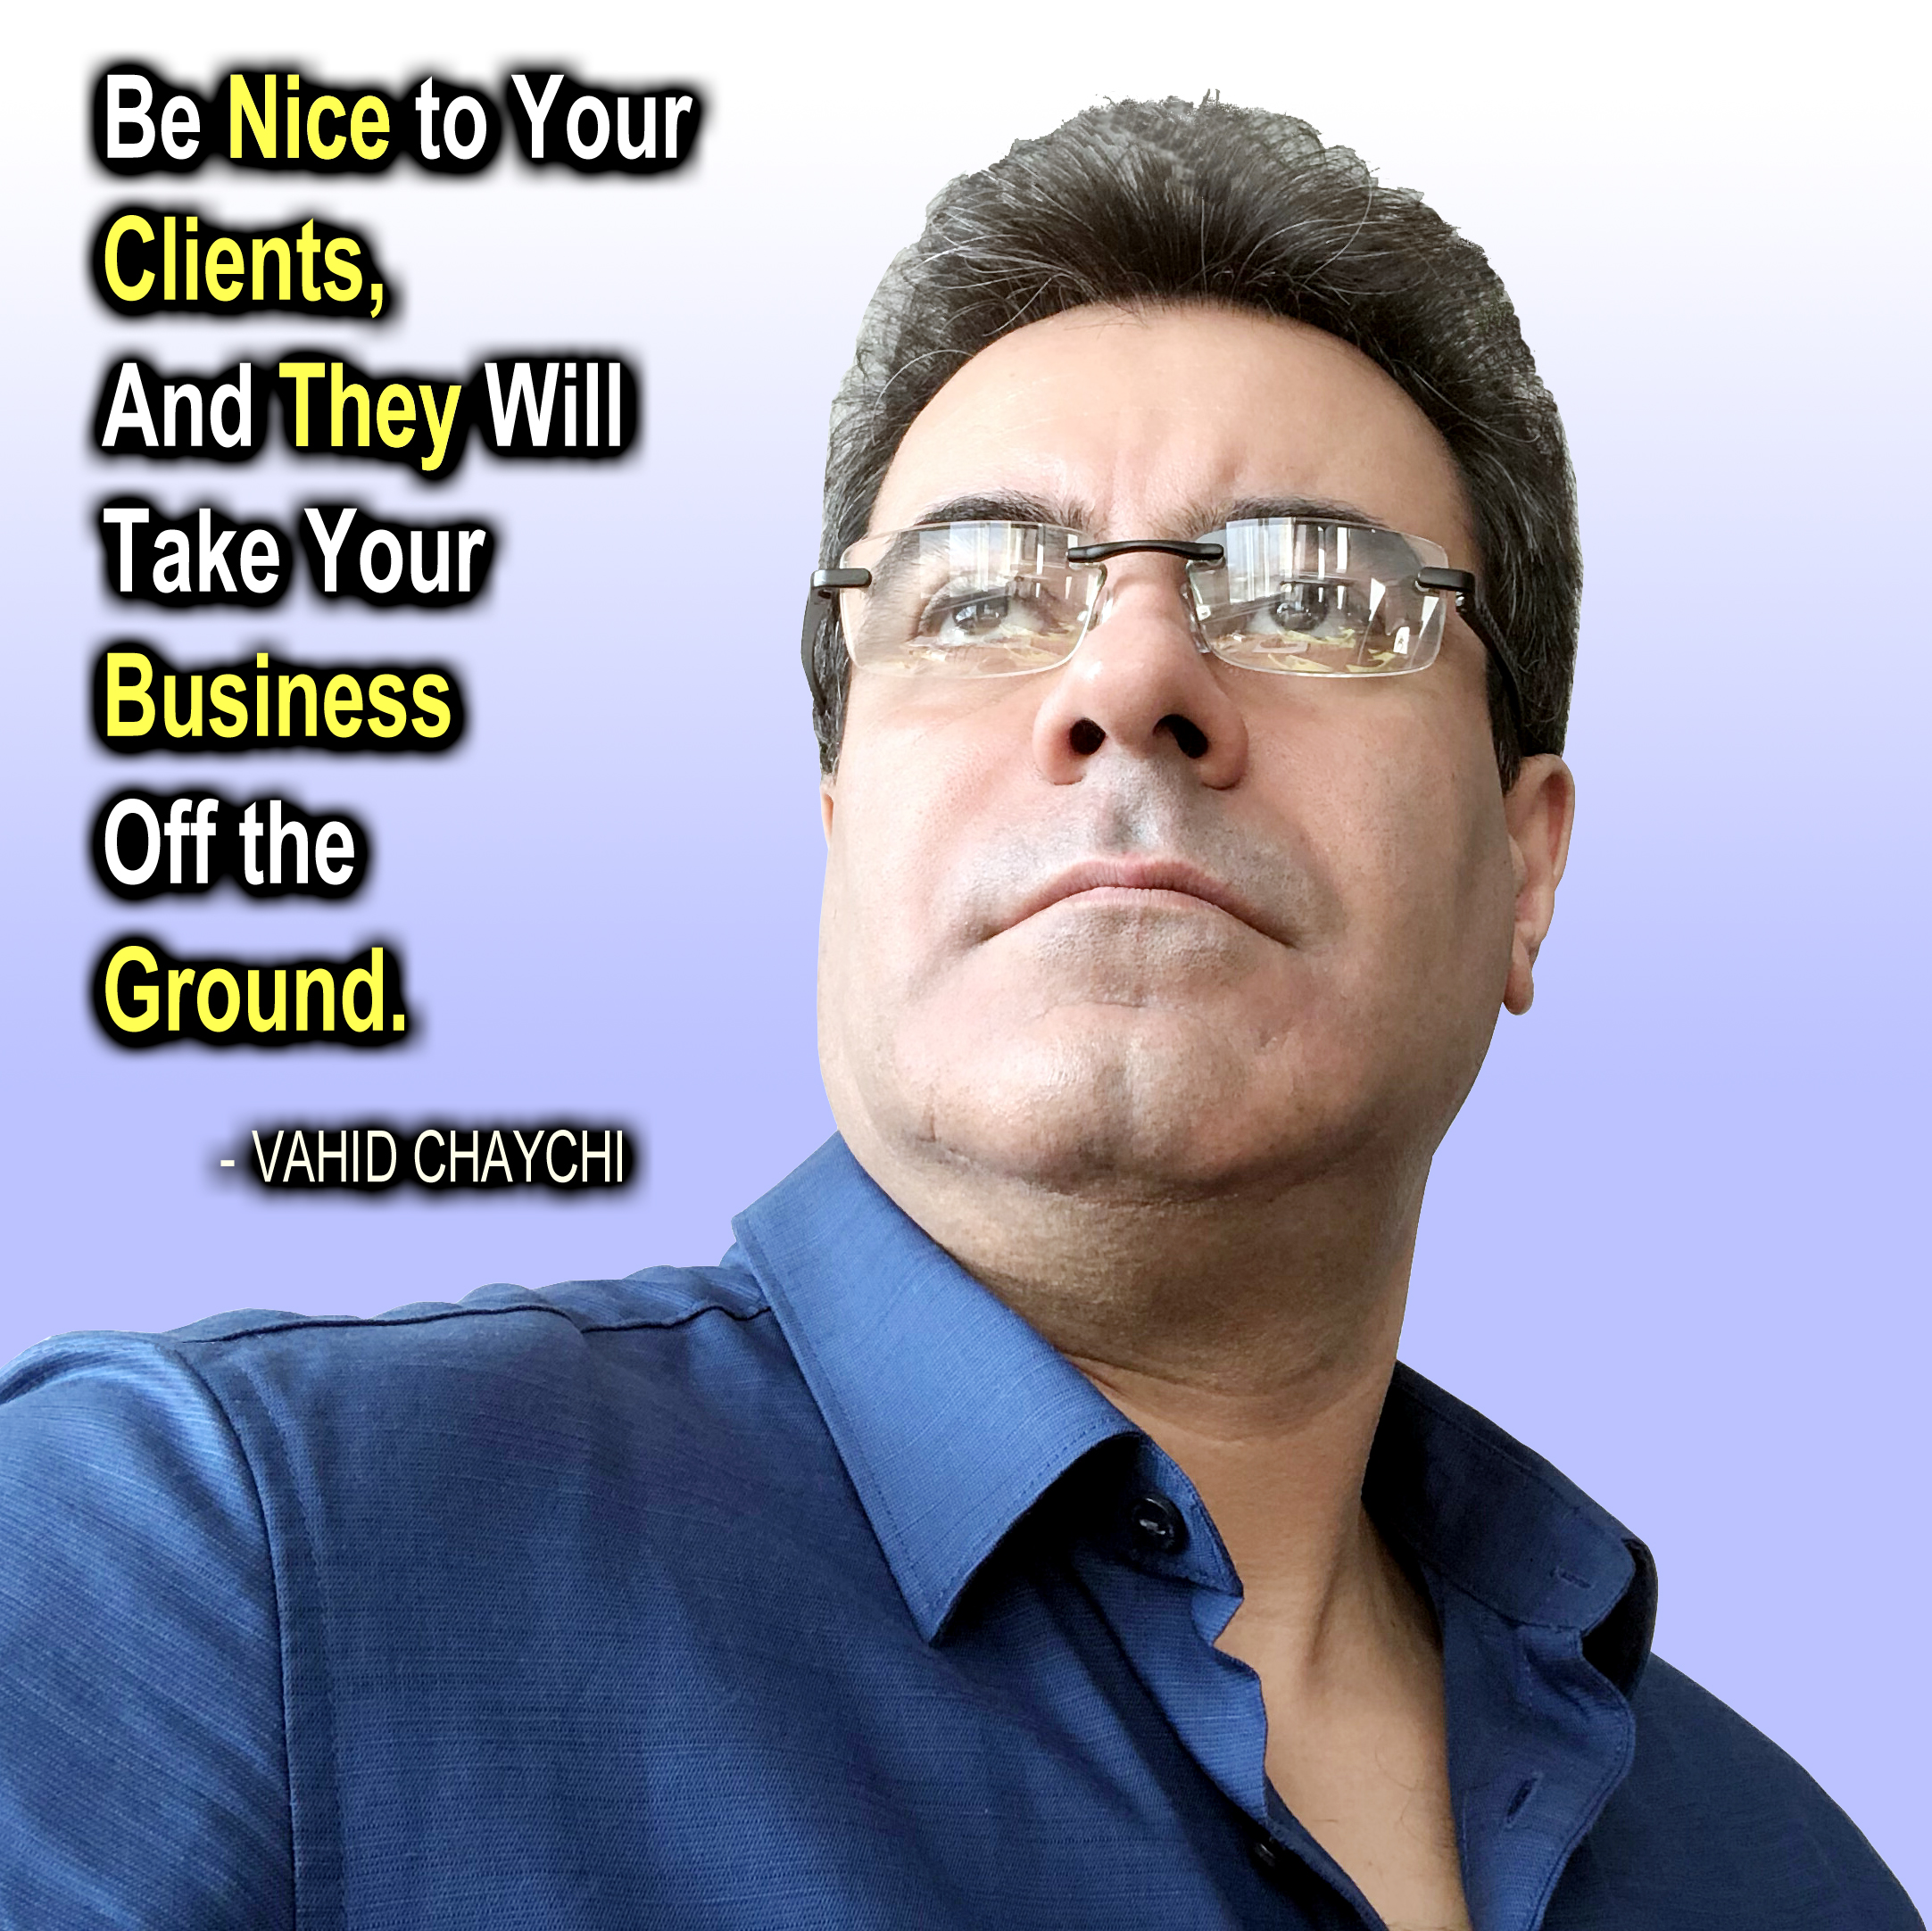 Be Nice to Your Clients...